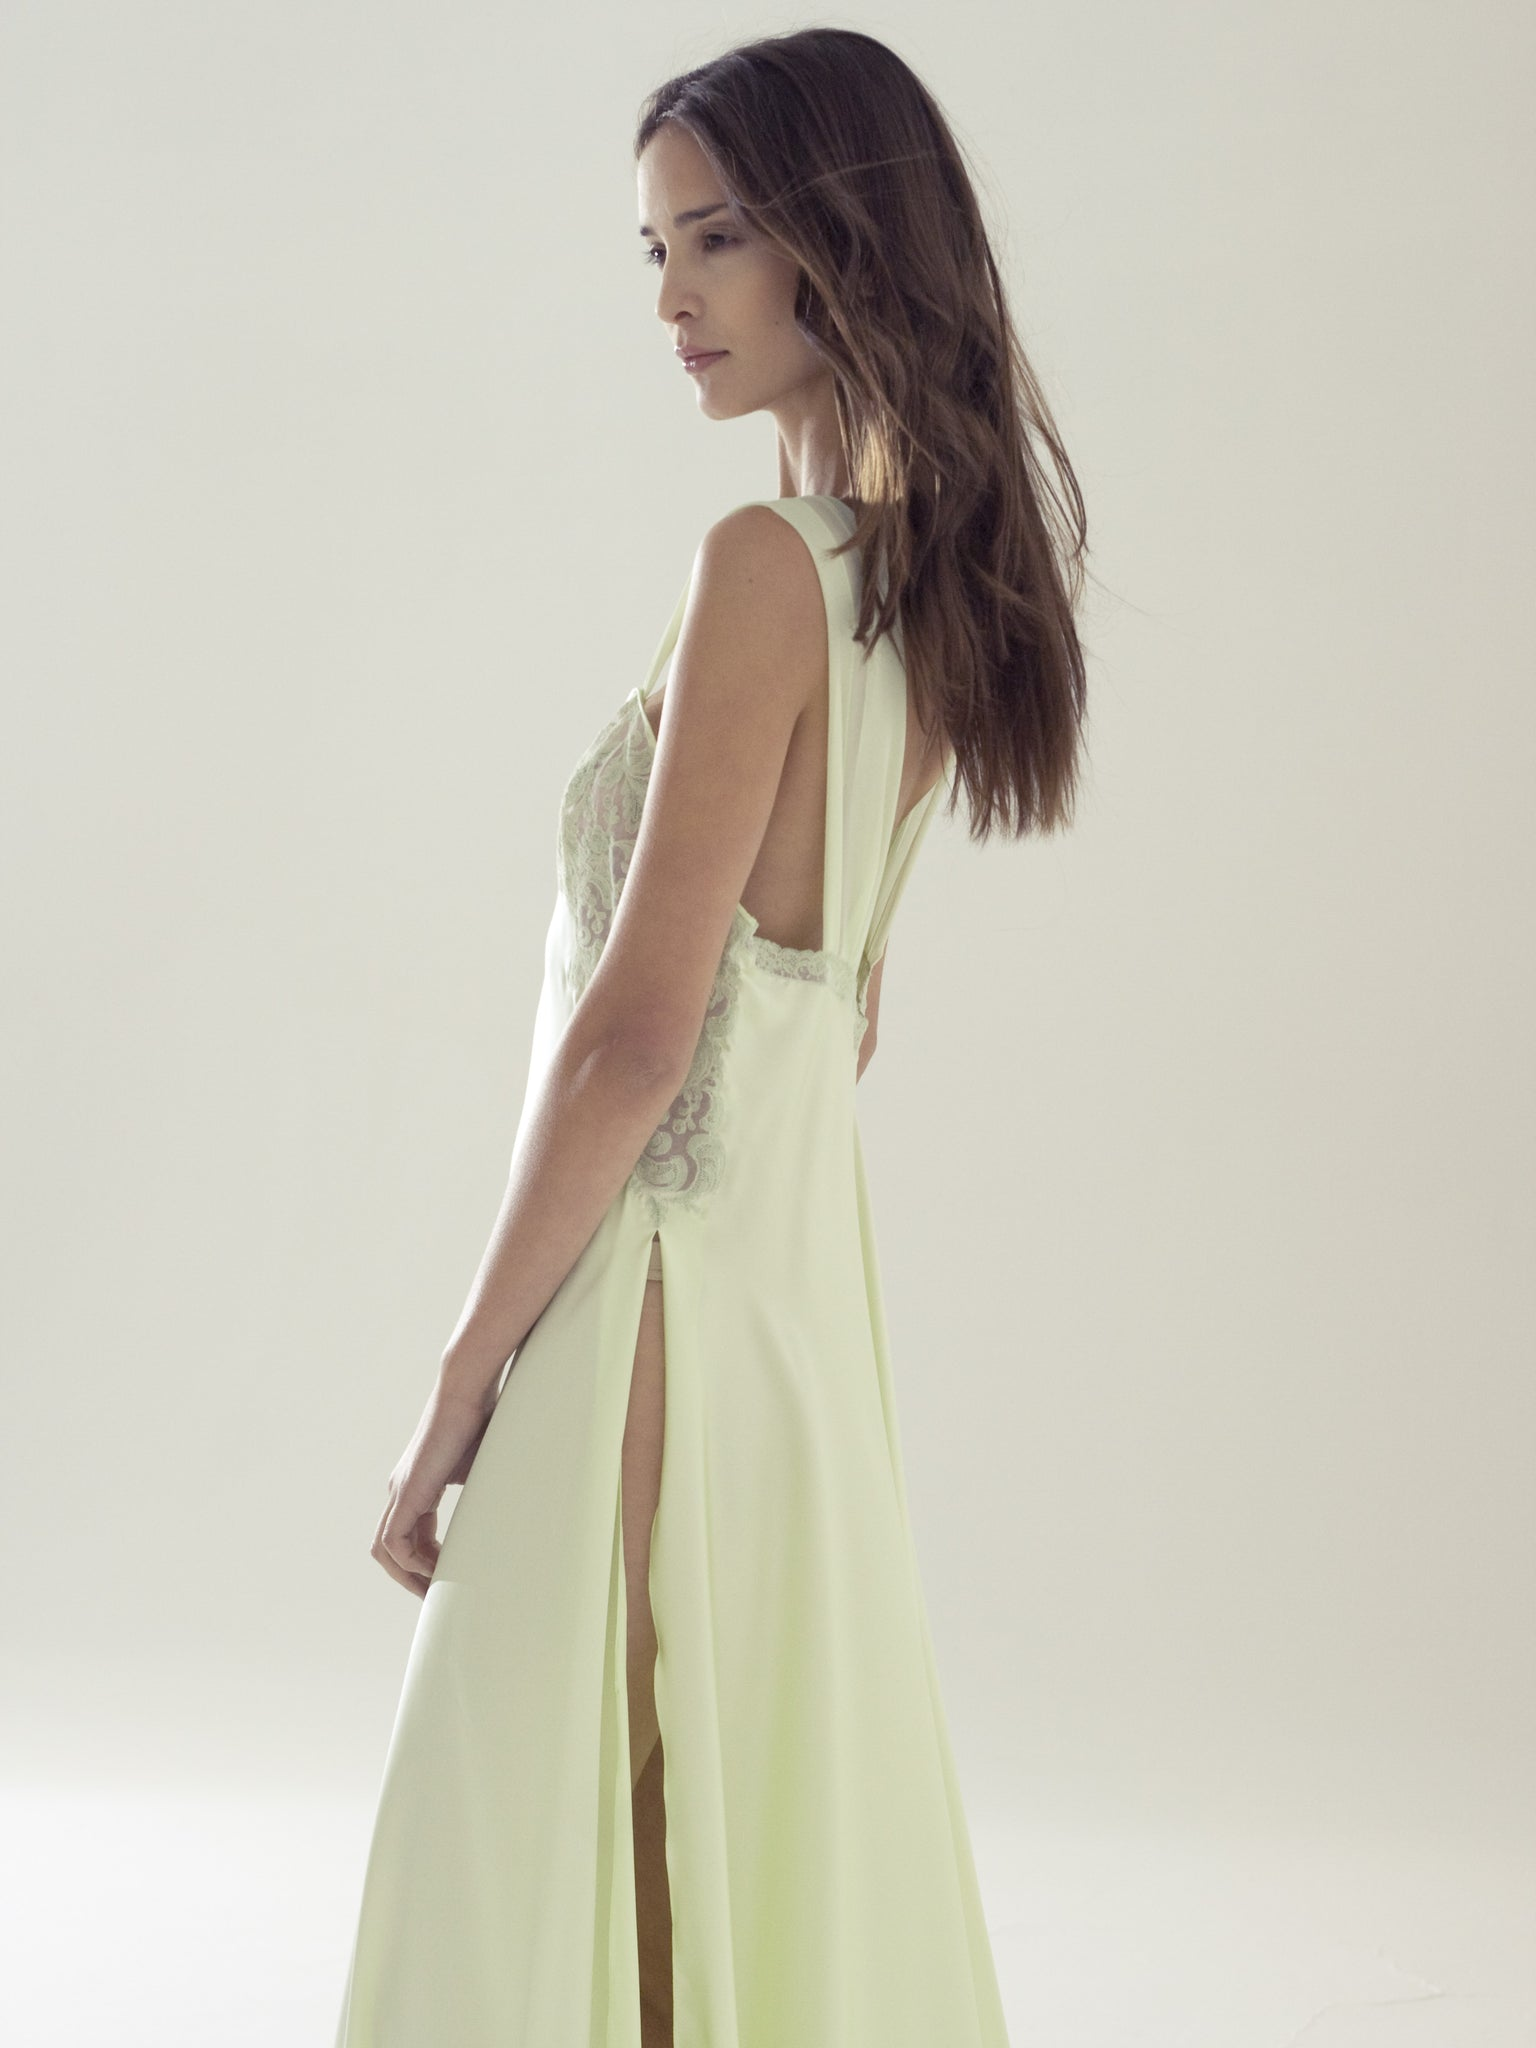 Long Silk Nightgown - Flora Lastraioli Shop Online